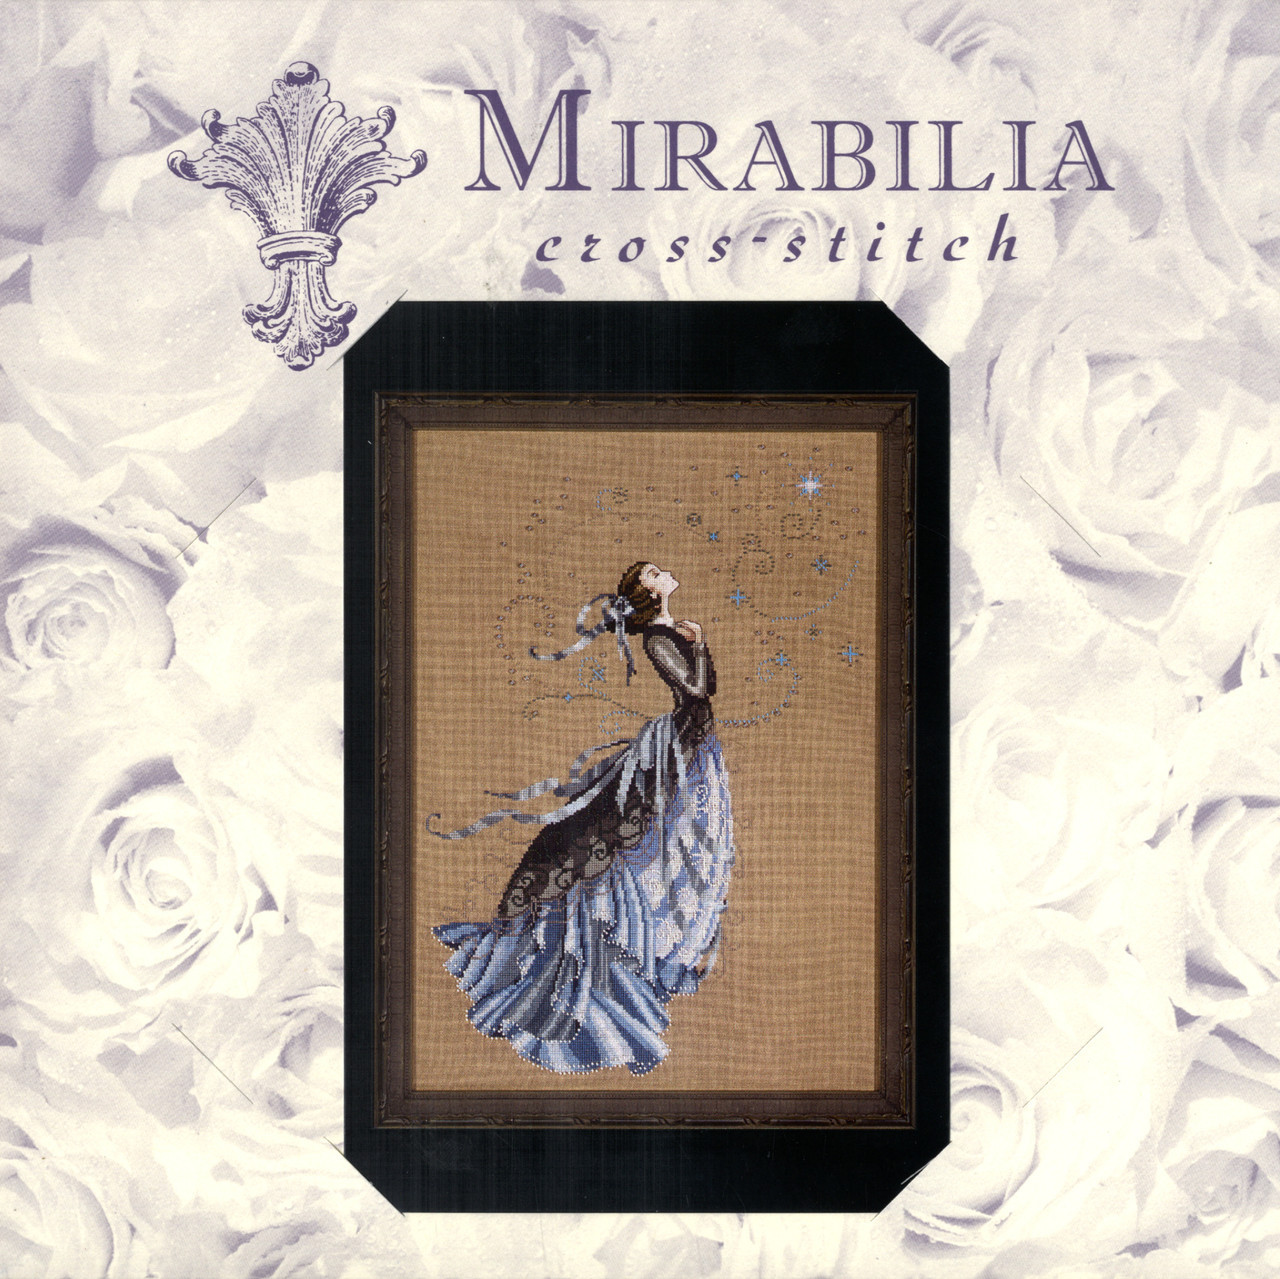 Mirabilia - The Stargazer